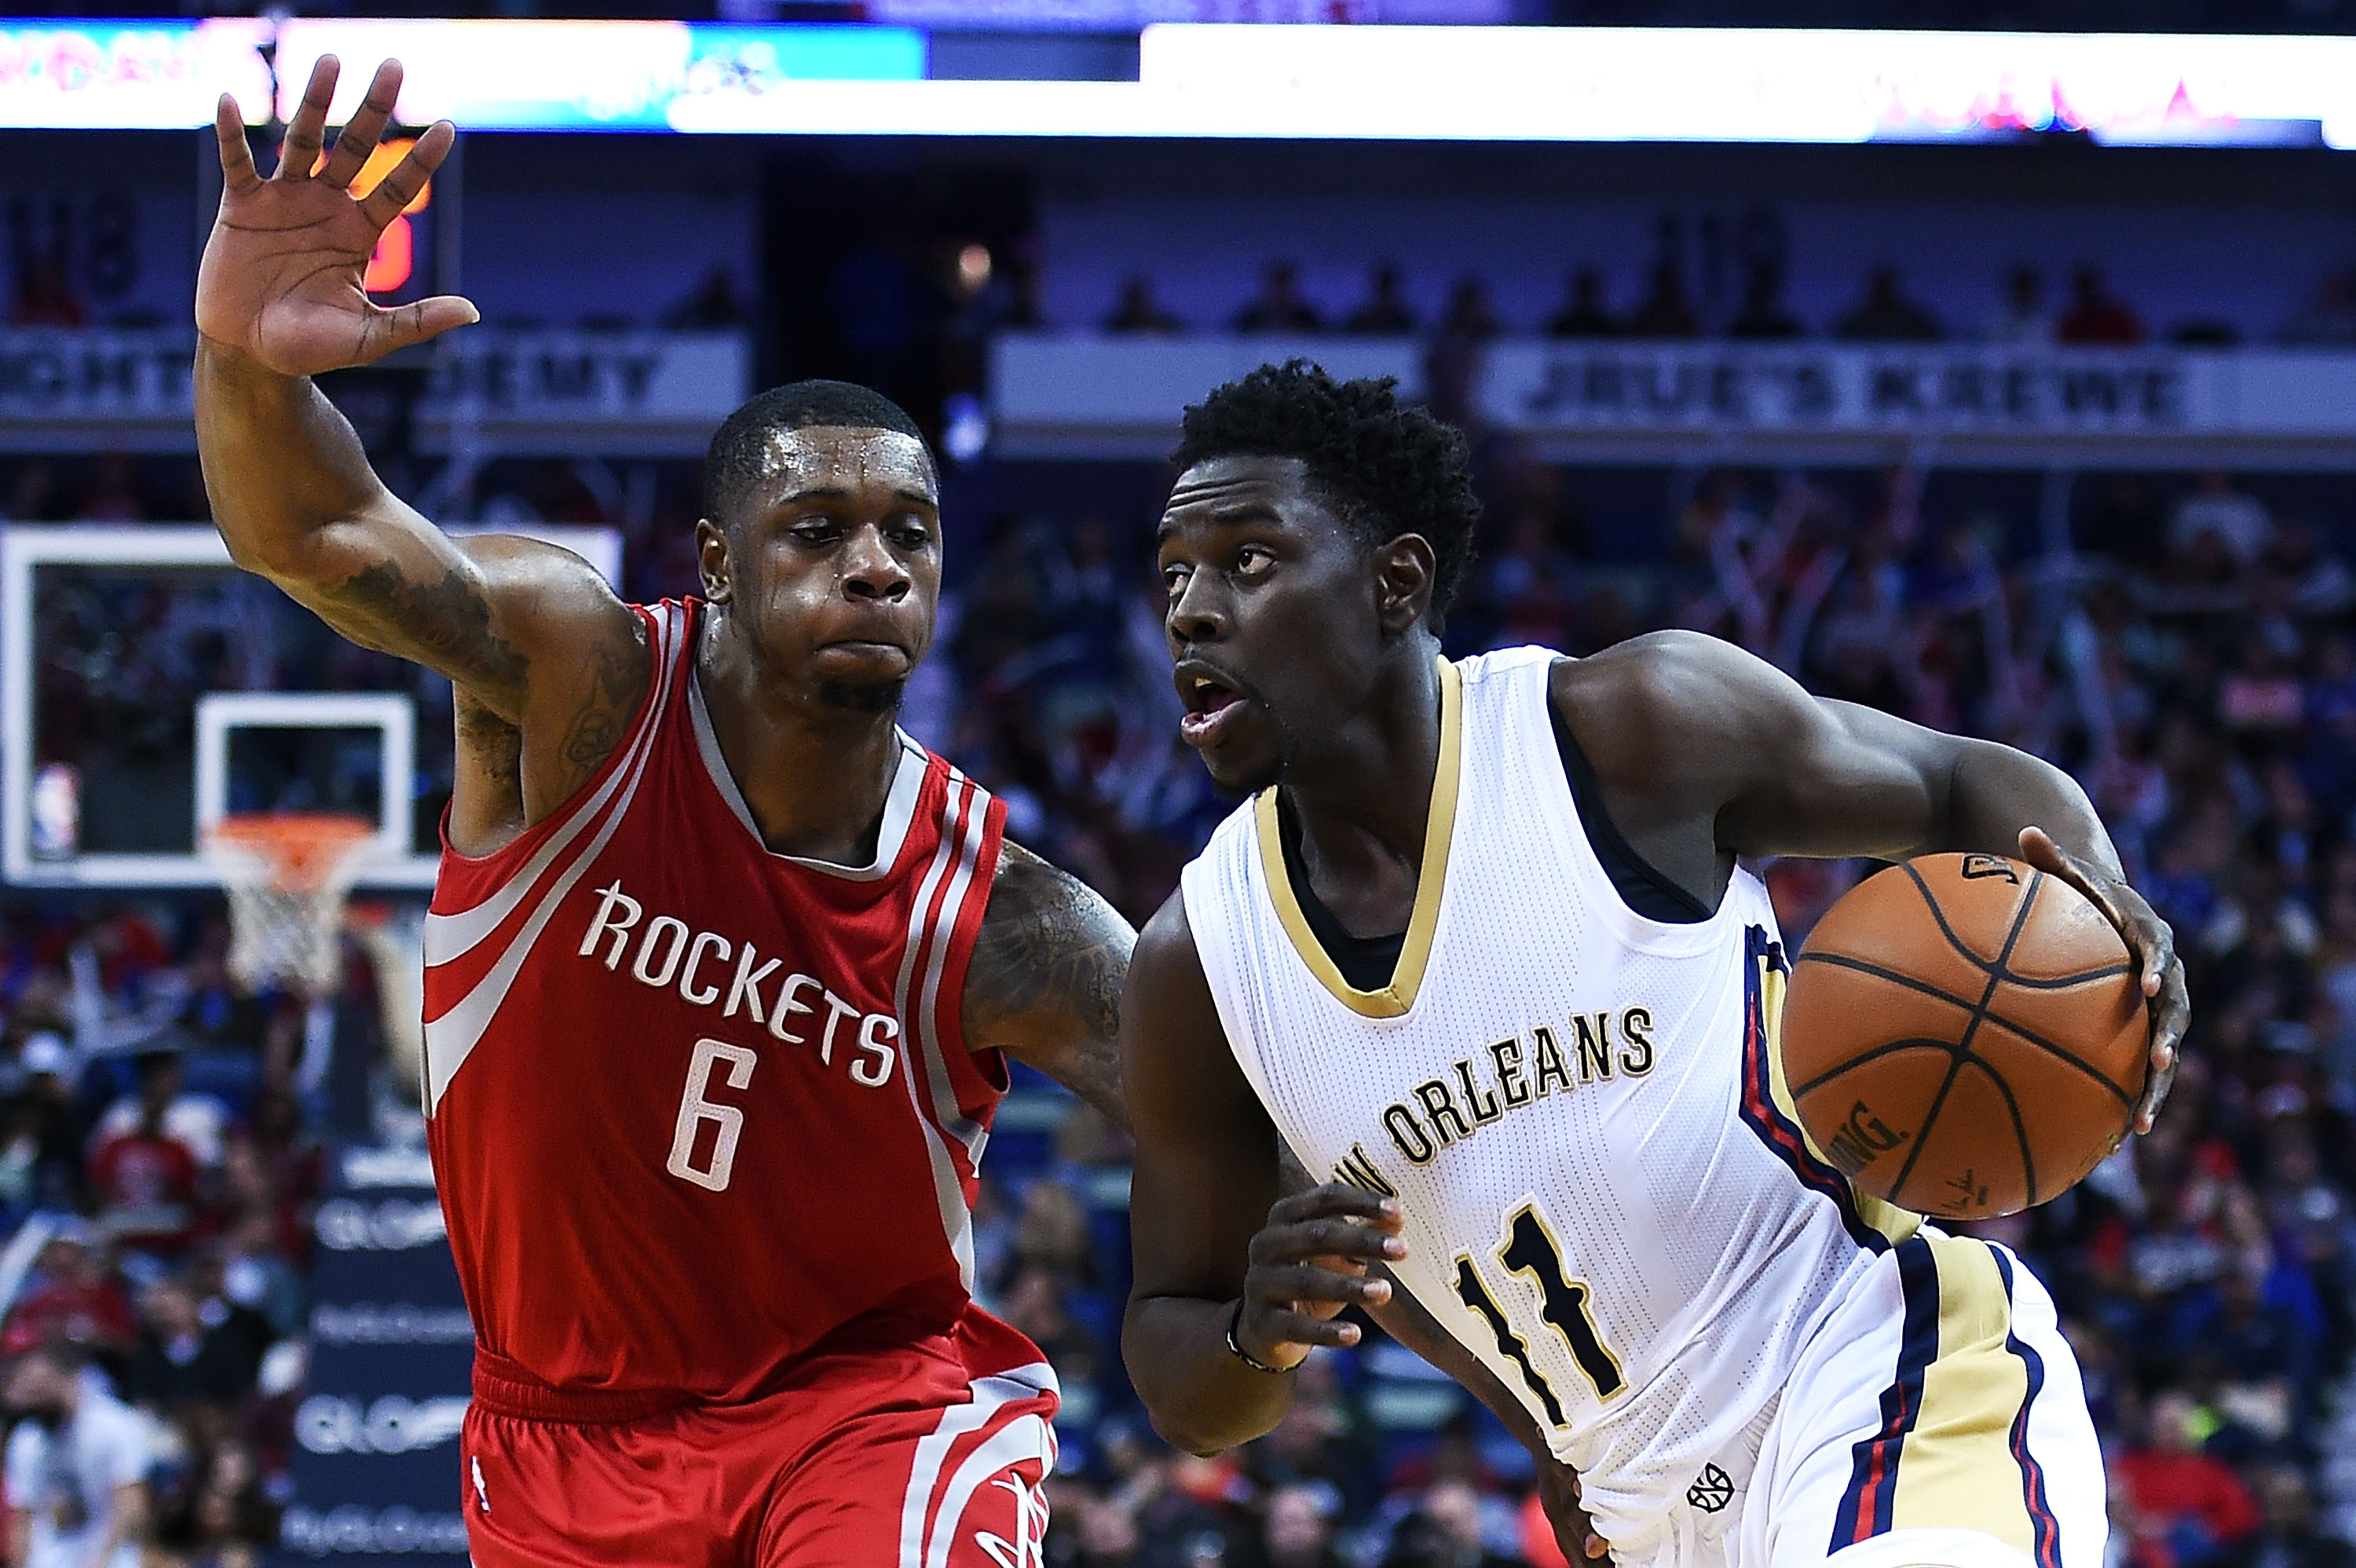 1512727816duel_NBA_Houston_Rockets.jpg